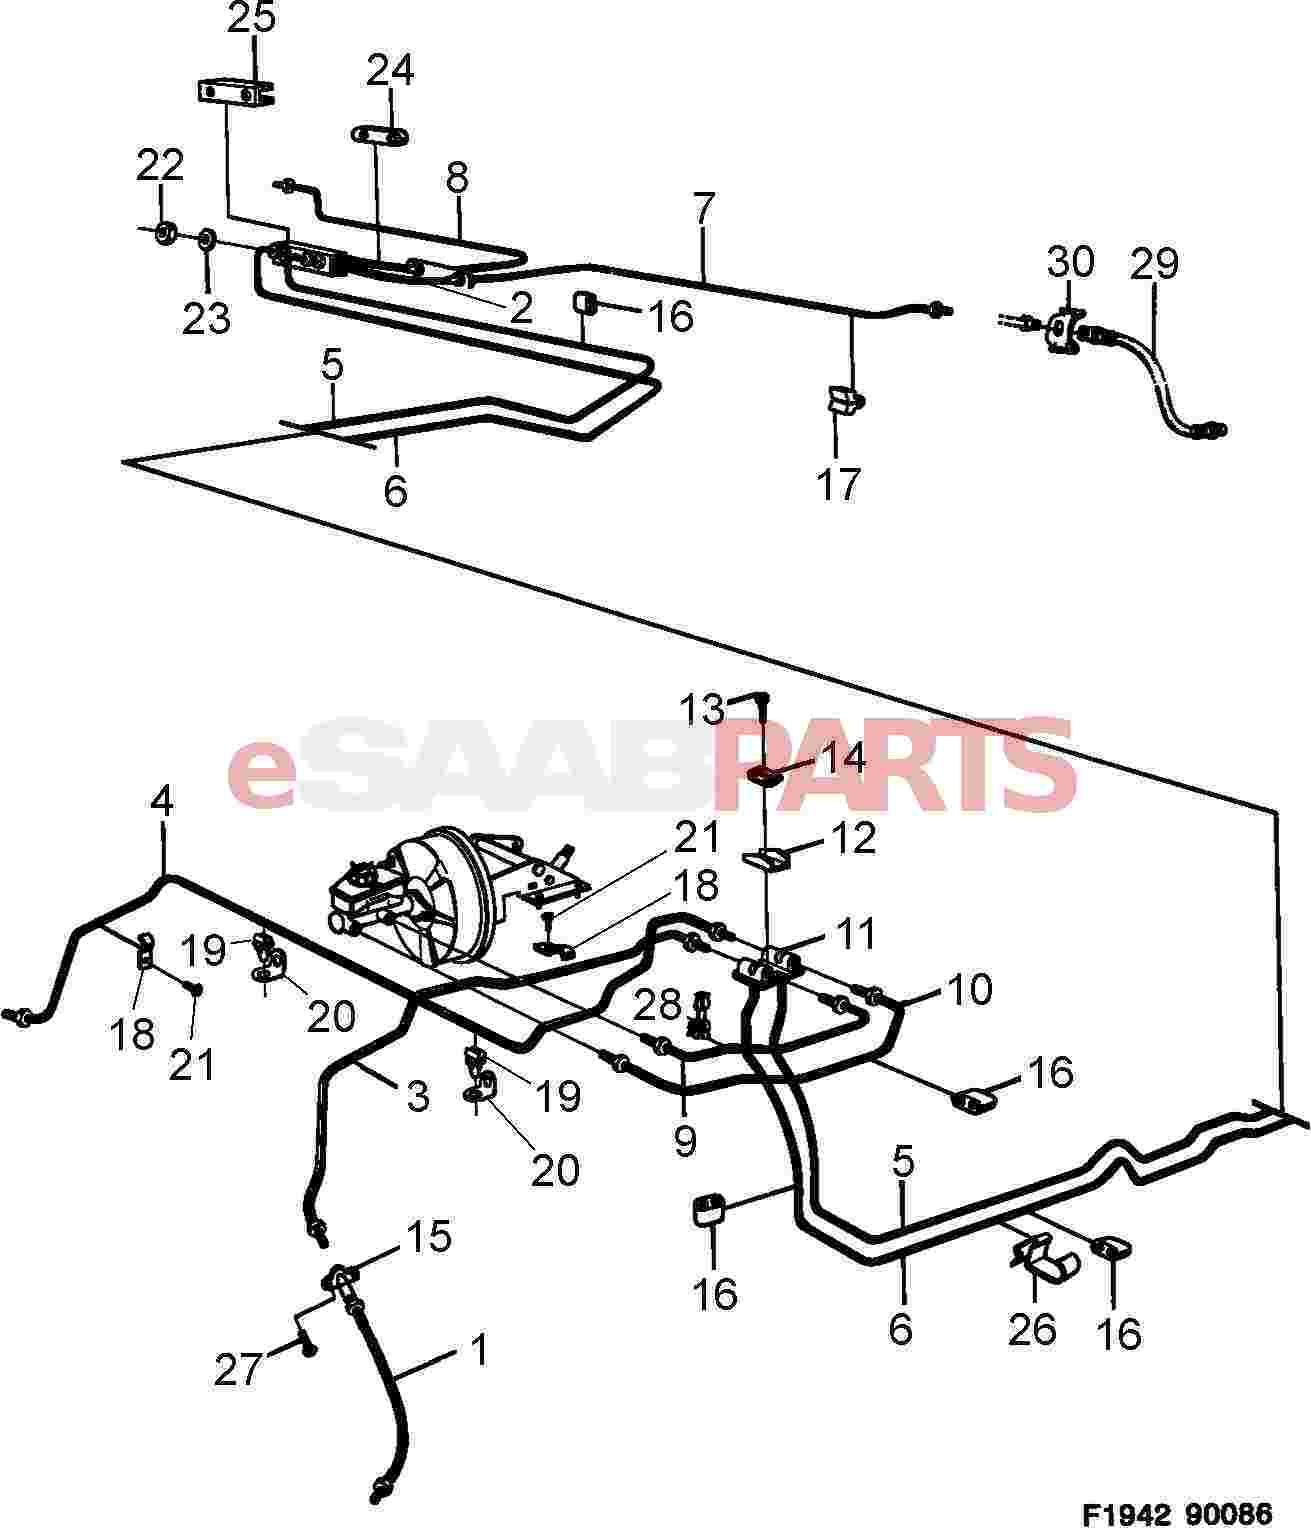 hight resolution of saab brakes diagram wiring diagramsaab brakes diagram wiring diagram librarysaab brakes diagram wiring diagram9101650 saab